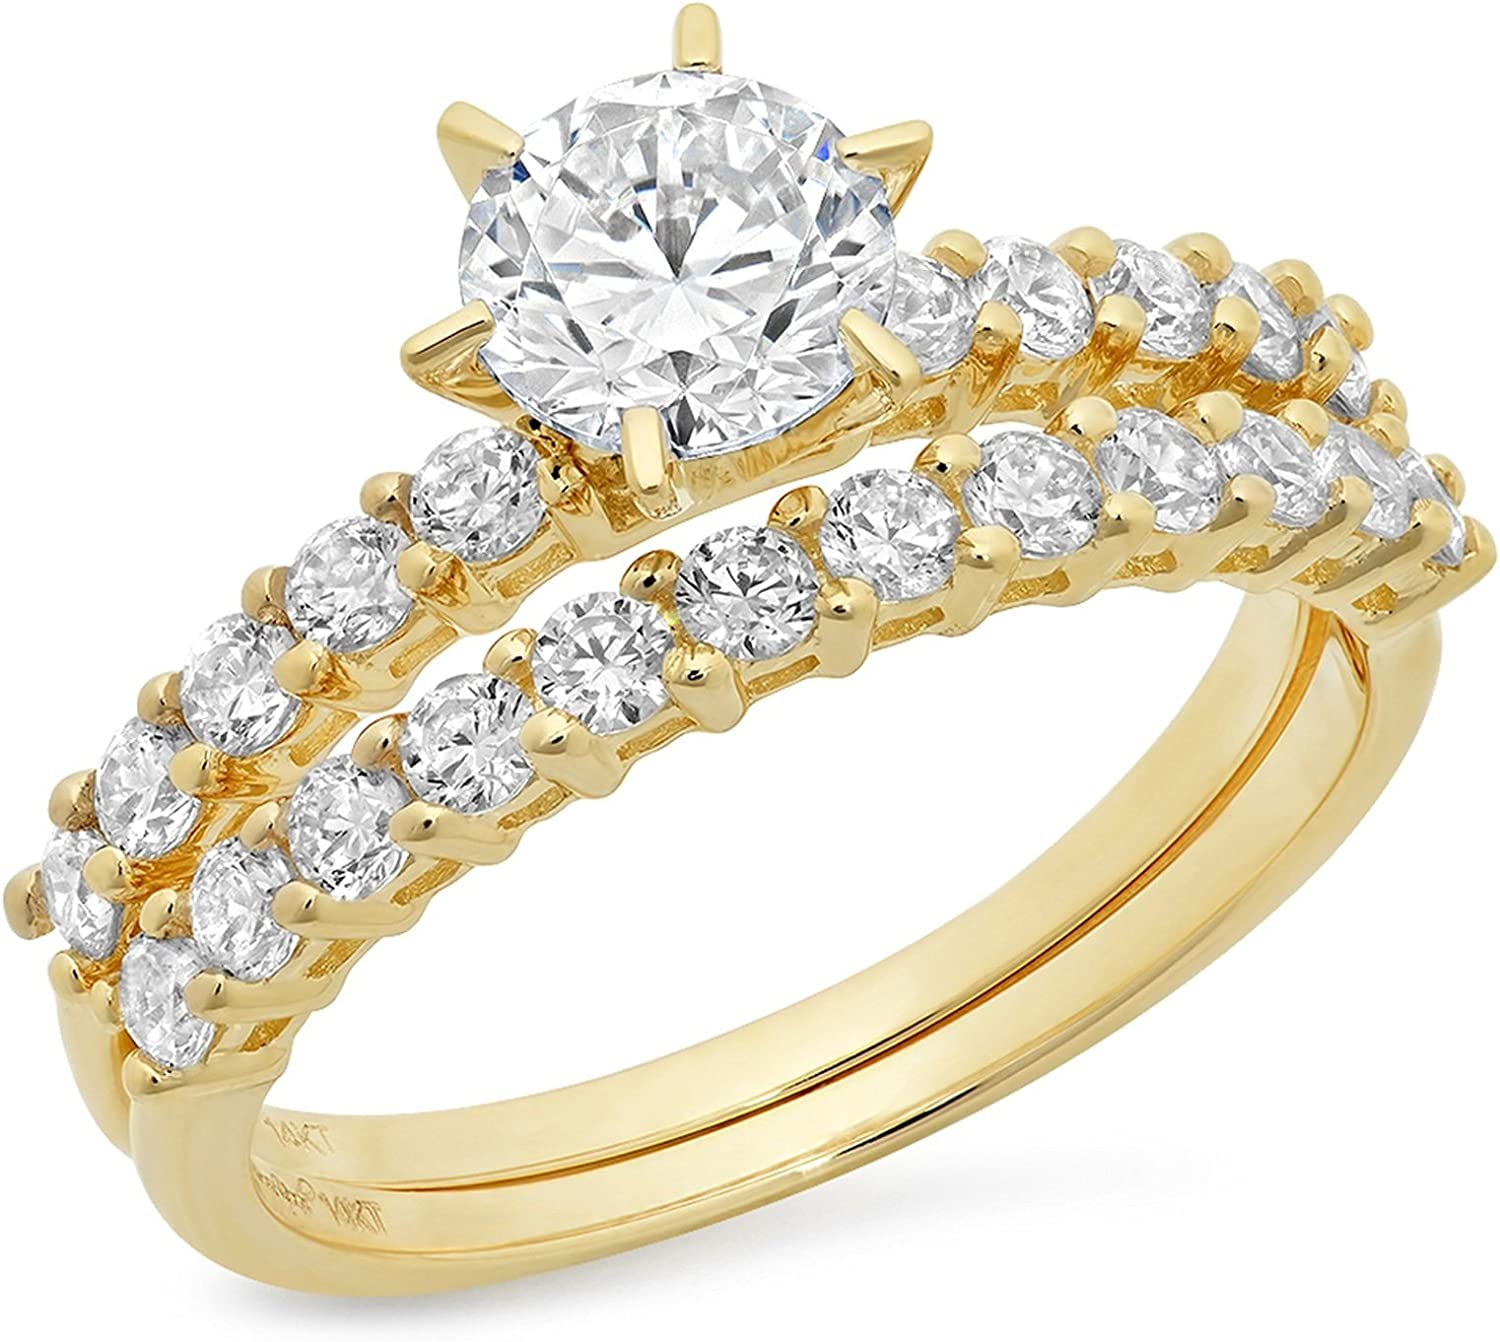 3.0ct Round Cut Pave Solitaire with Accent Genuine Moissanite & Simulated Diamond Engagement Promise Statement Anniversary Bridal Wedding Ring band set Solid 14k Yellow Gold